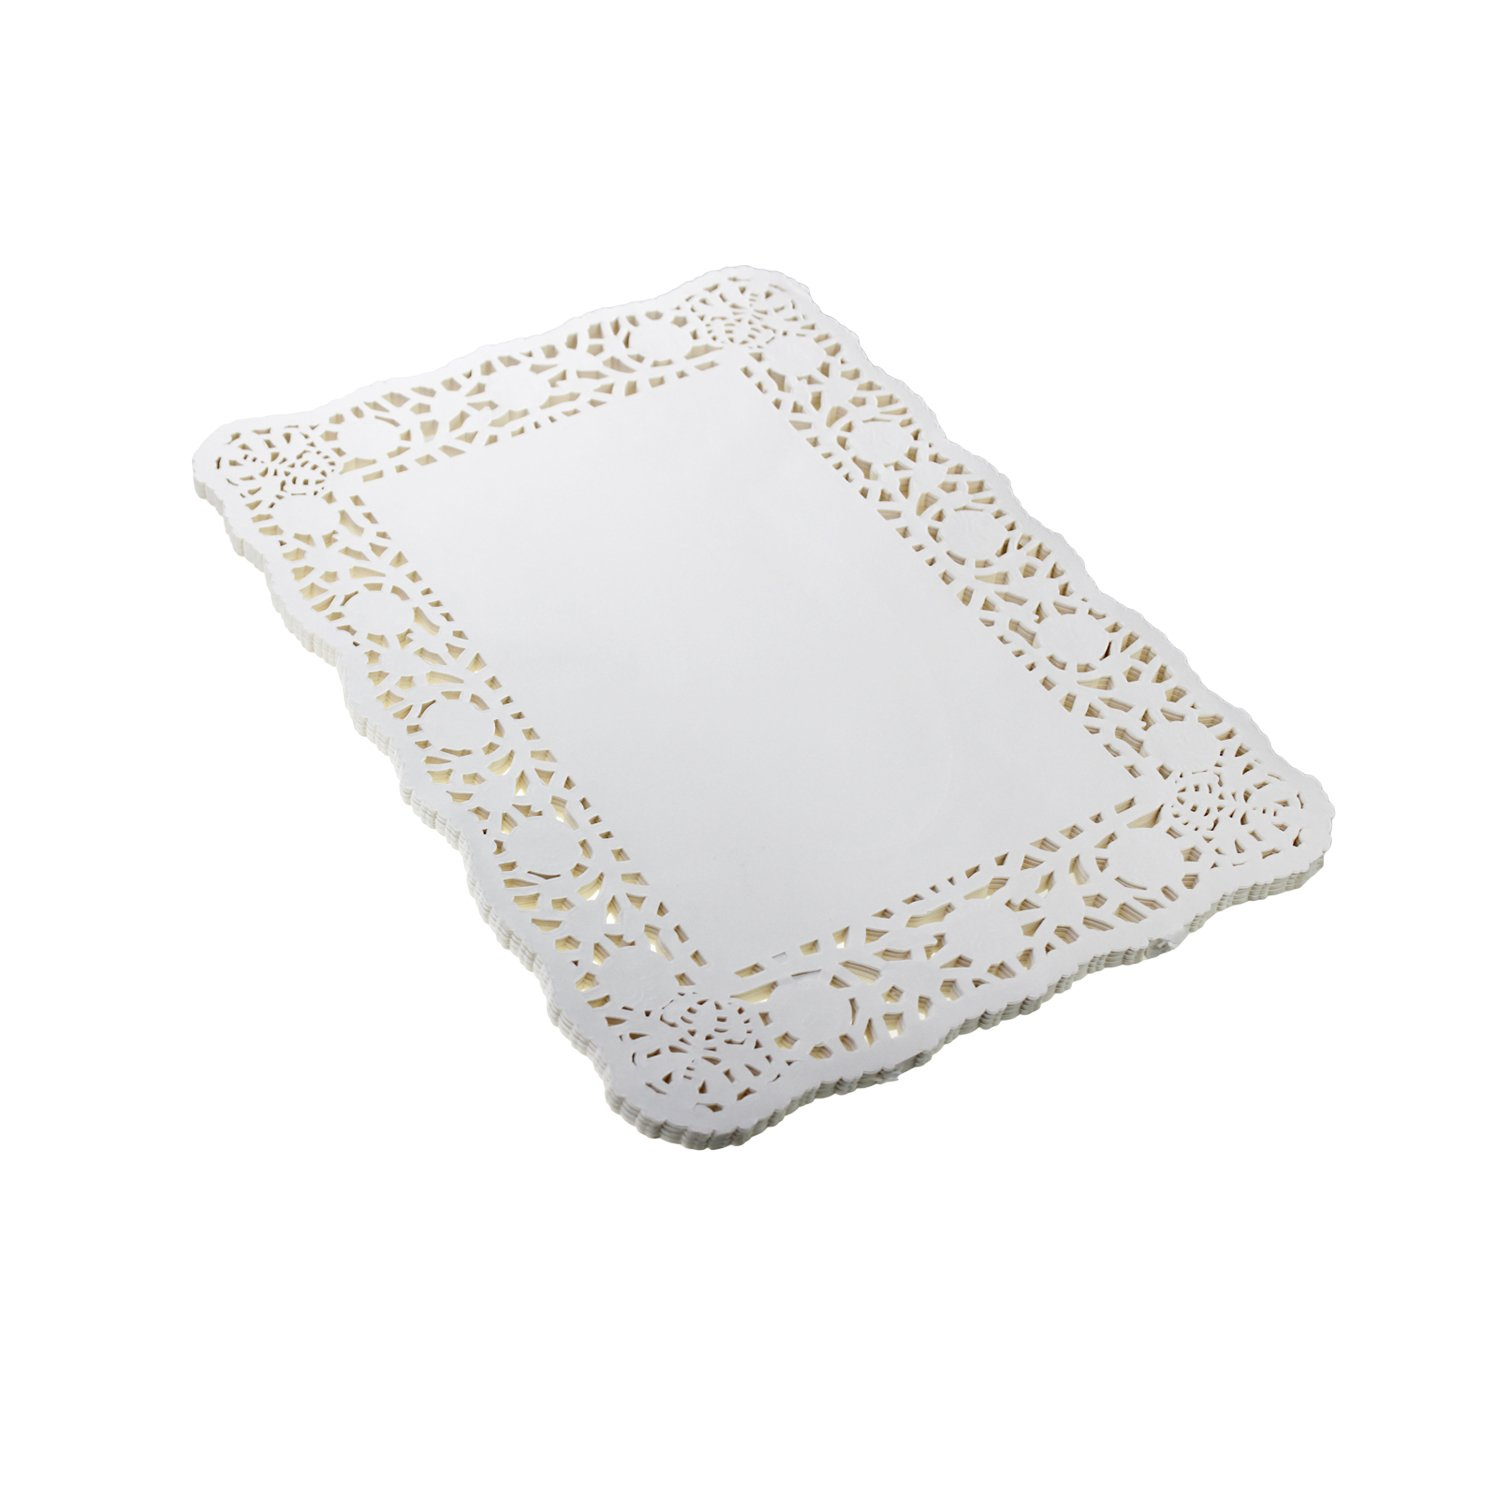 LJY 100 Pieces White Lace Rectangle Paper Doilies Cake Packaging Pads Wedding Tableware Decoration (10.5'' x 14.5'')